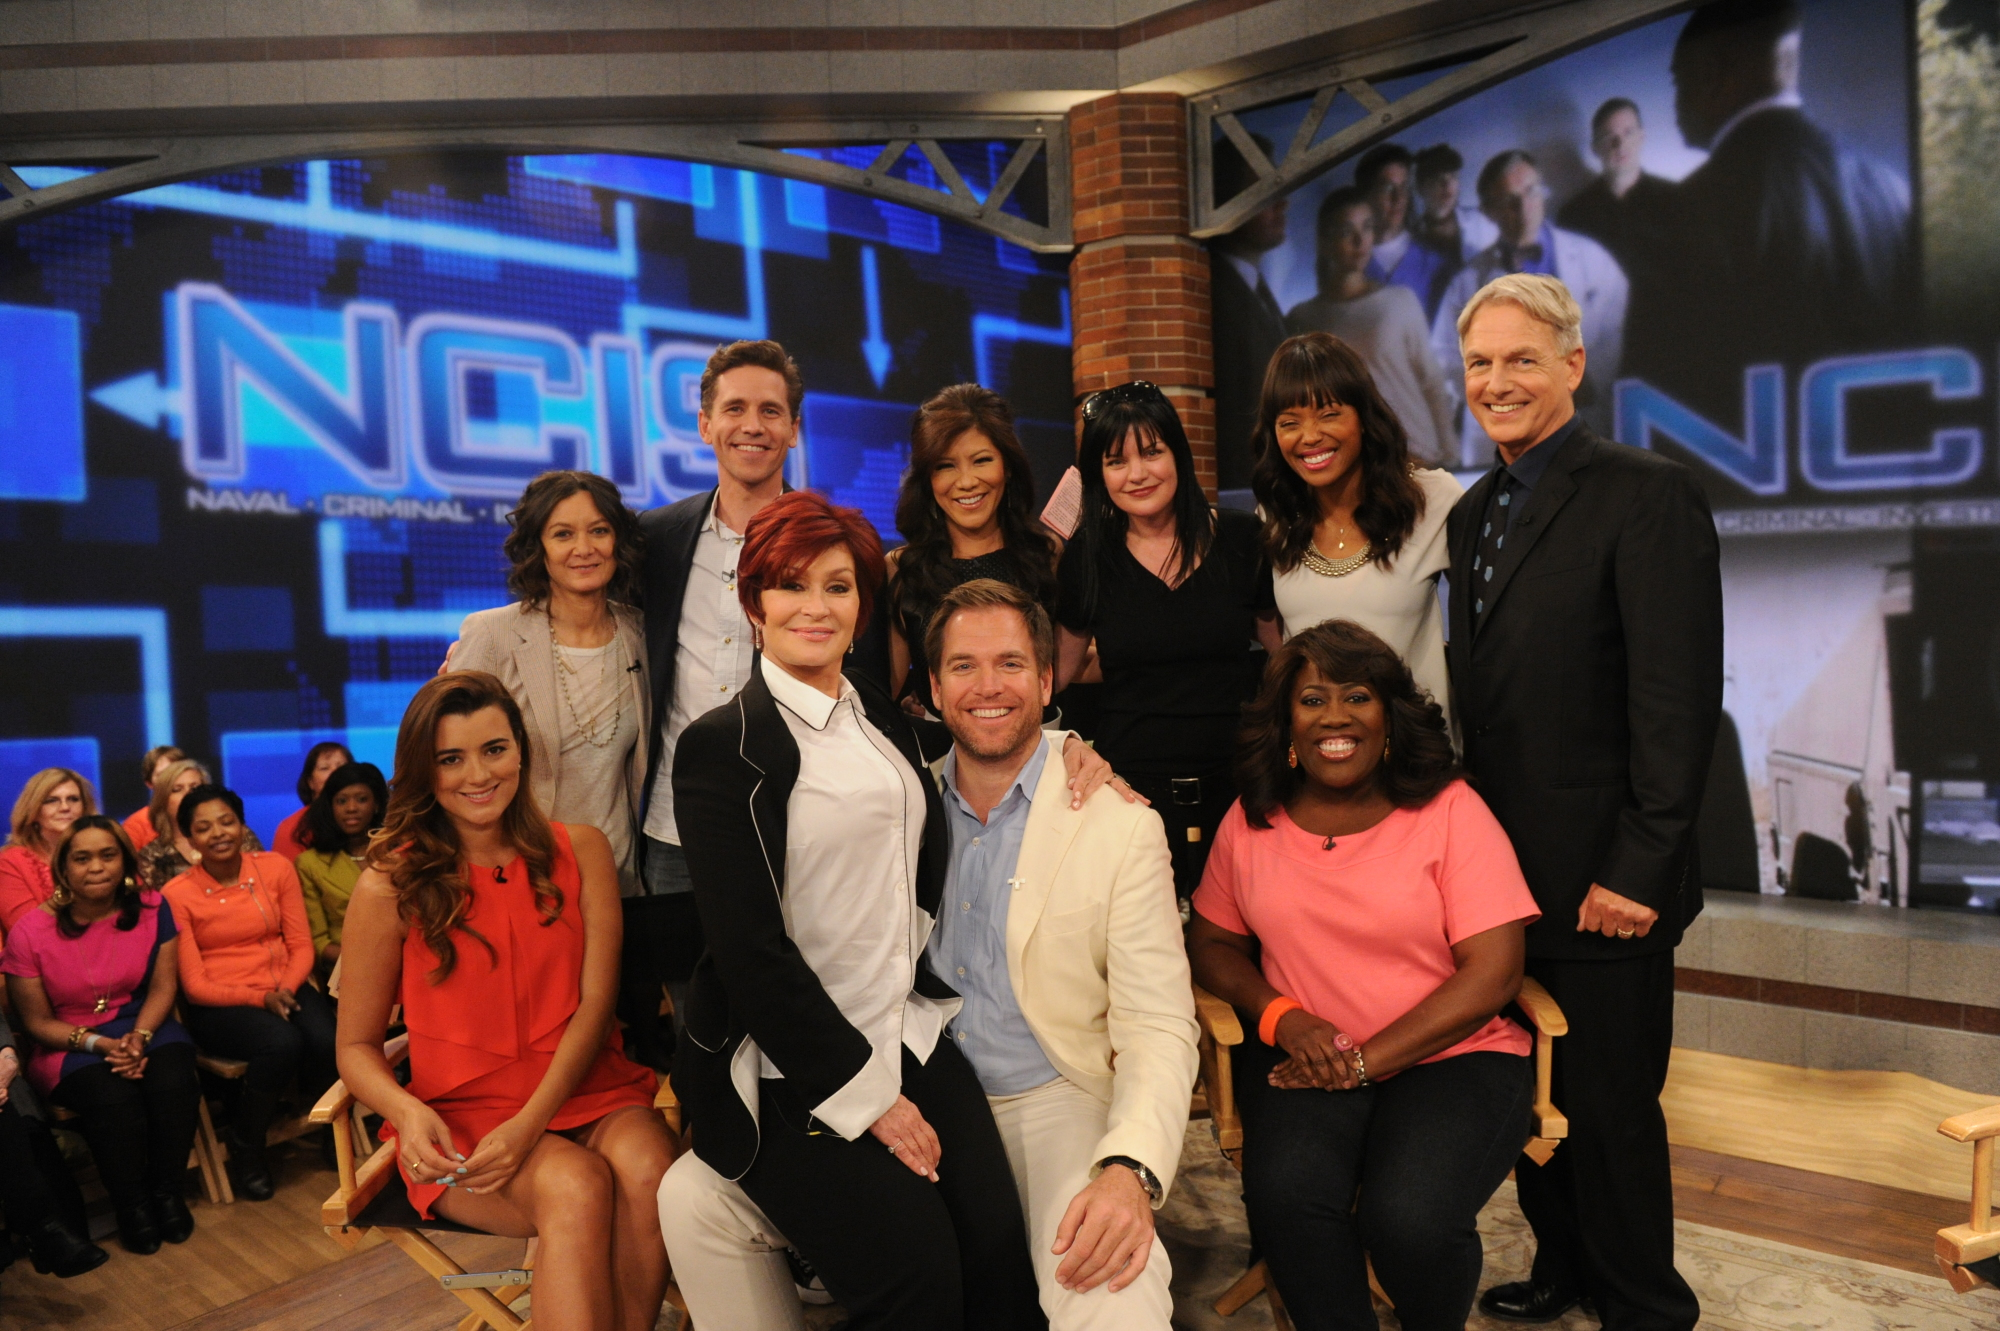 NCIS and The Ladies